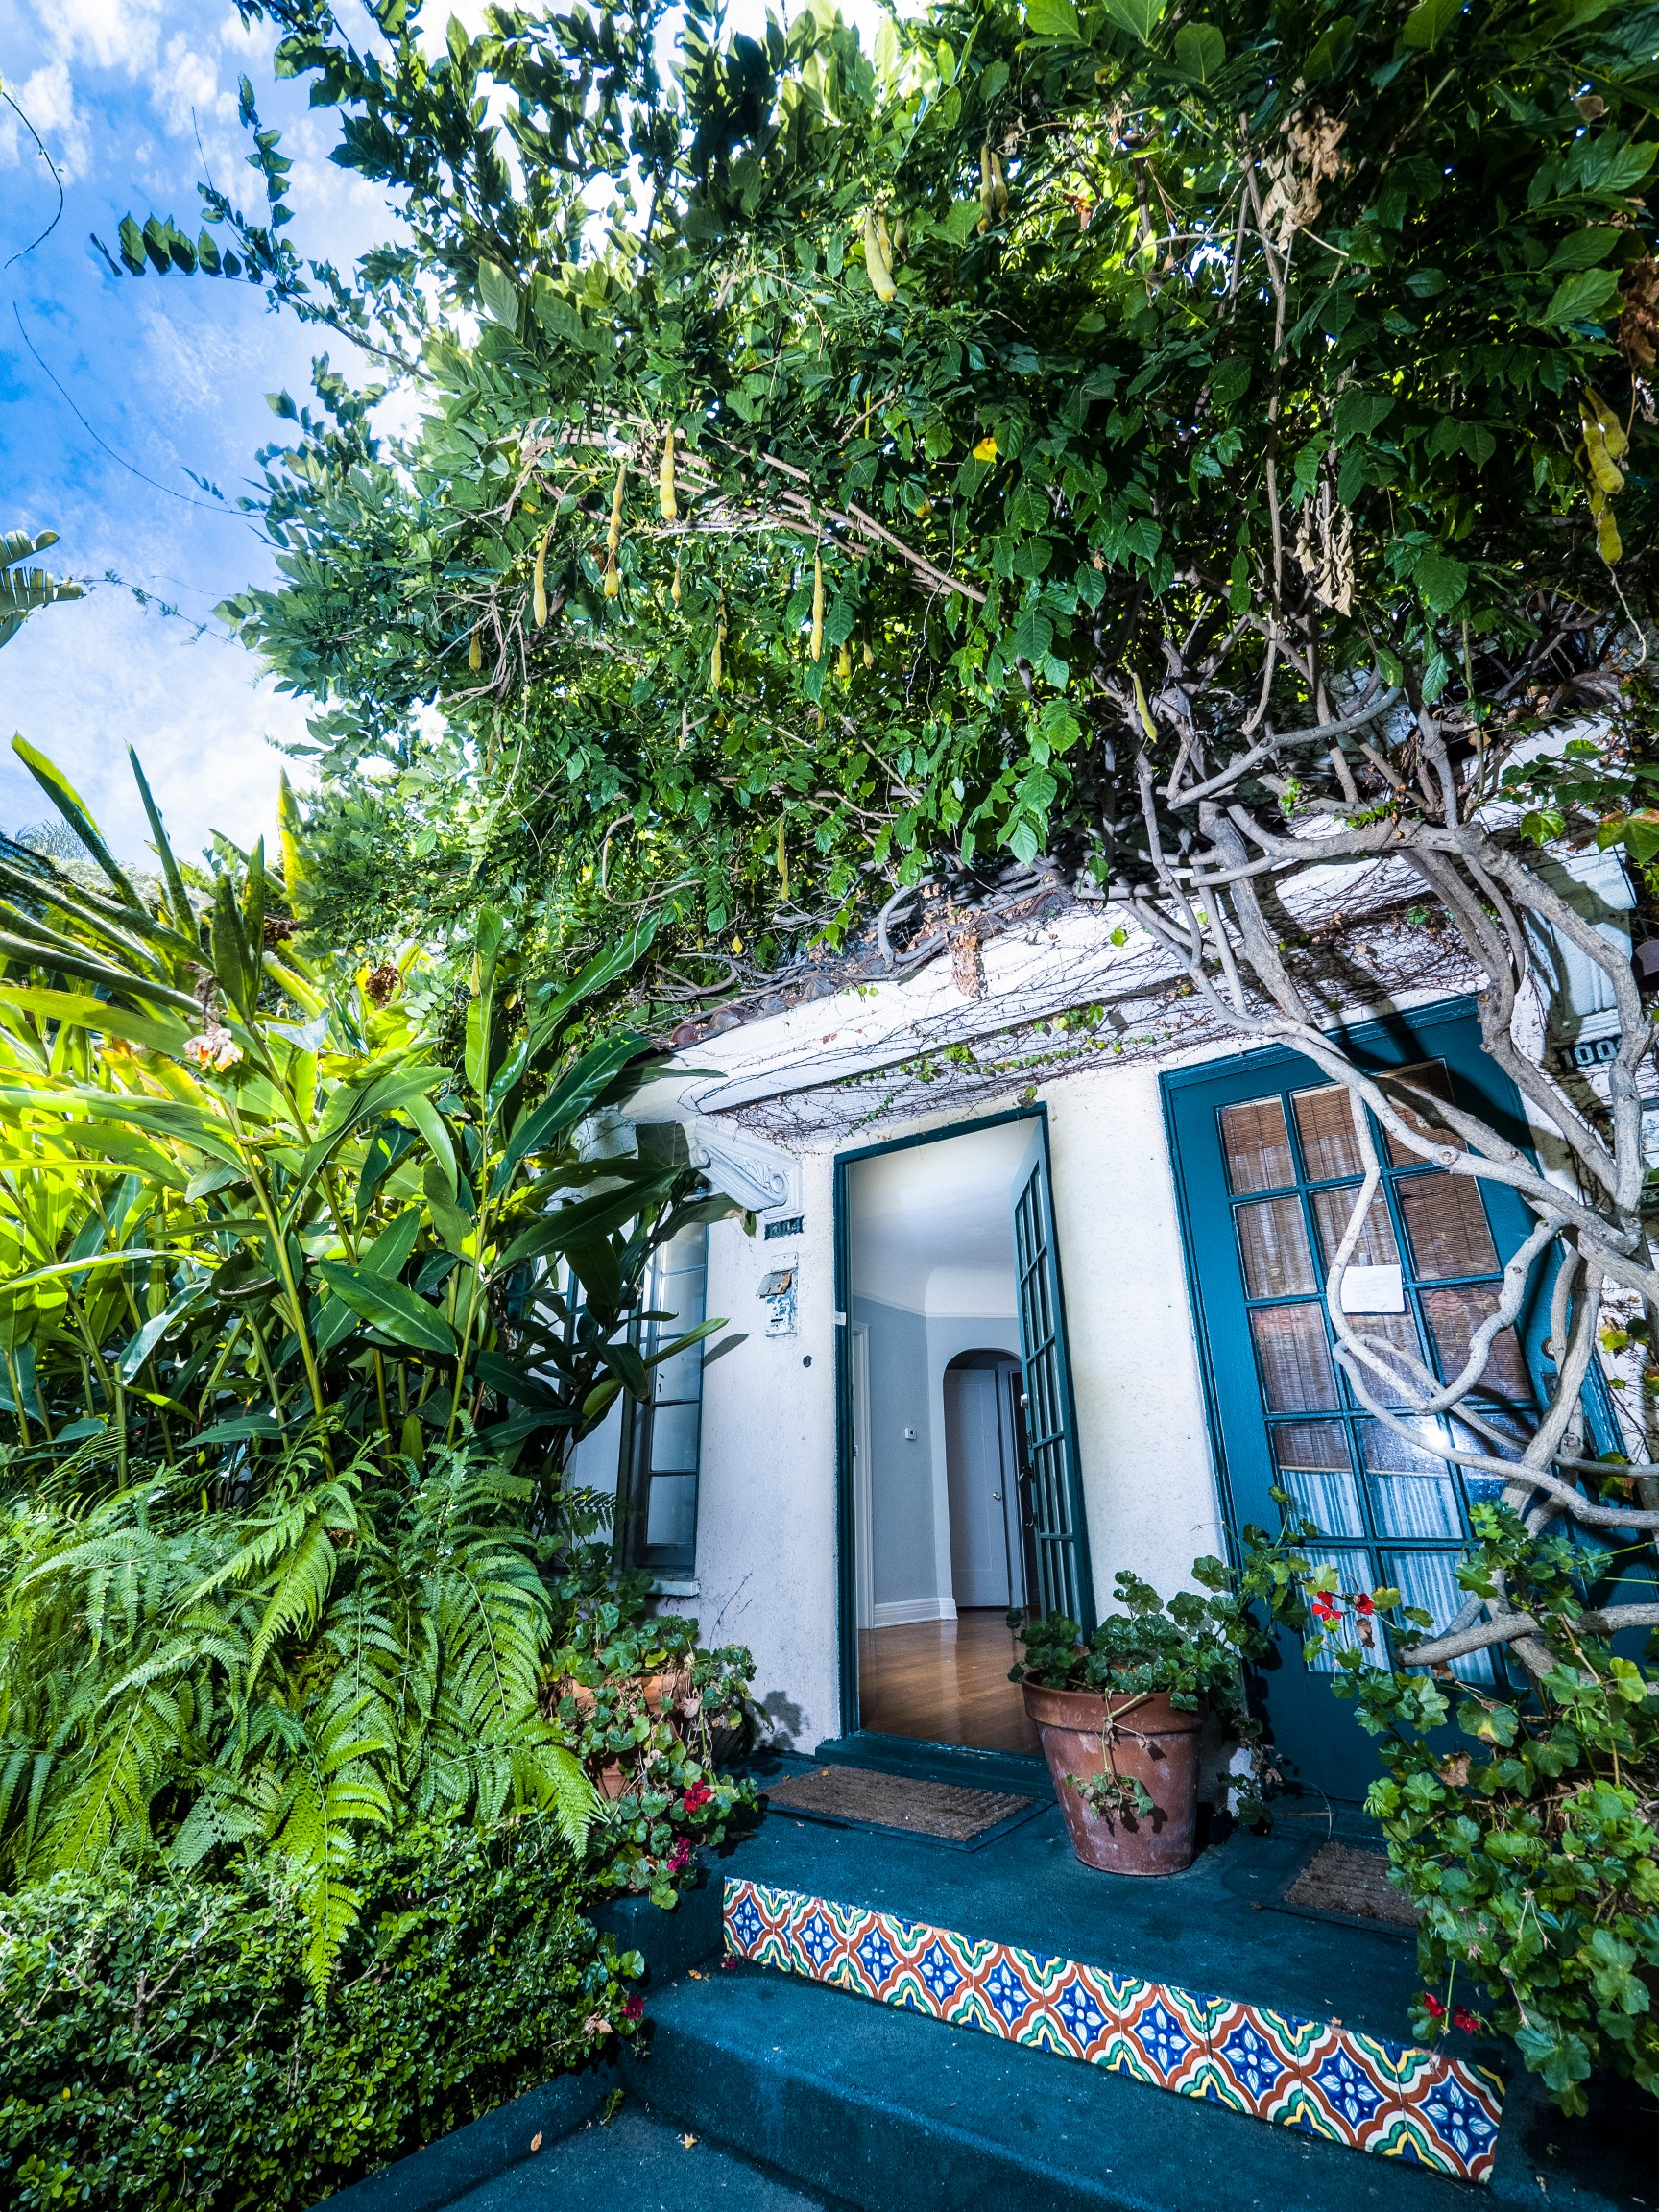 1002-1012½ N. Sweetzer Ave., West Hollywood, CA 90069